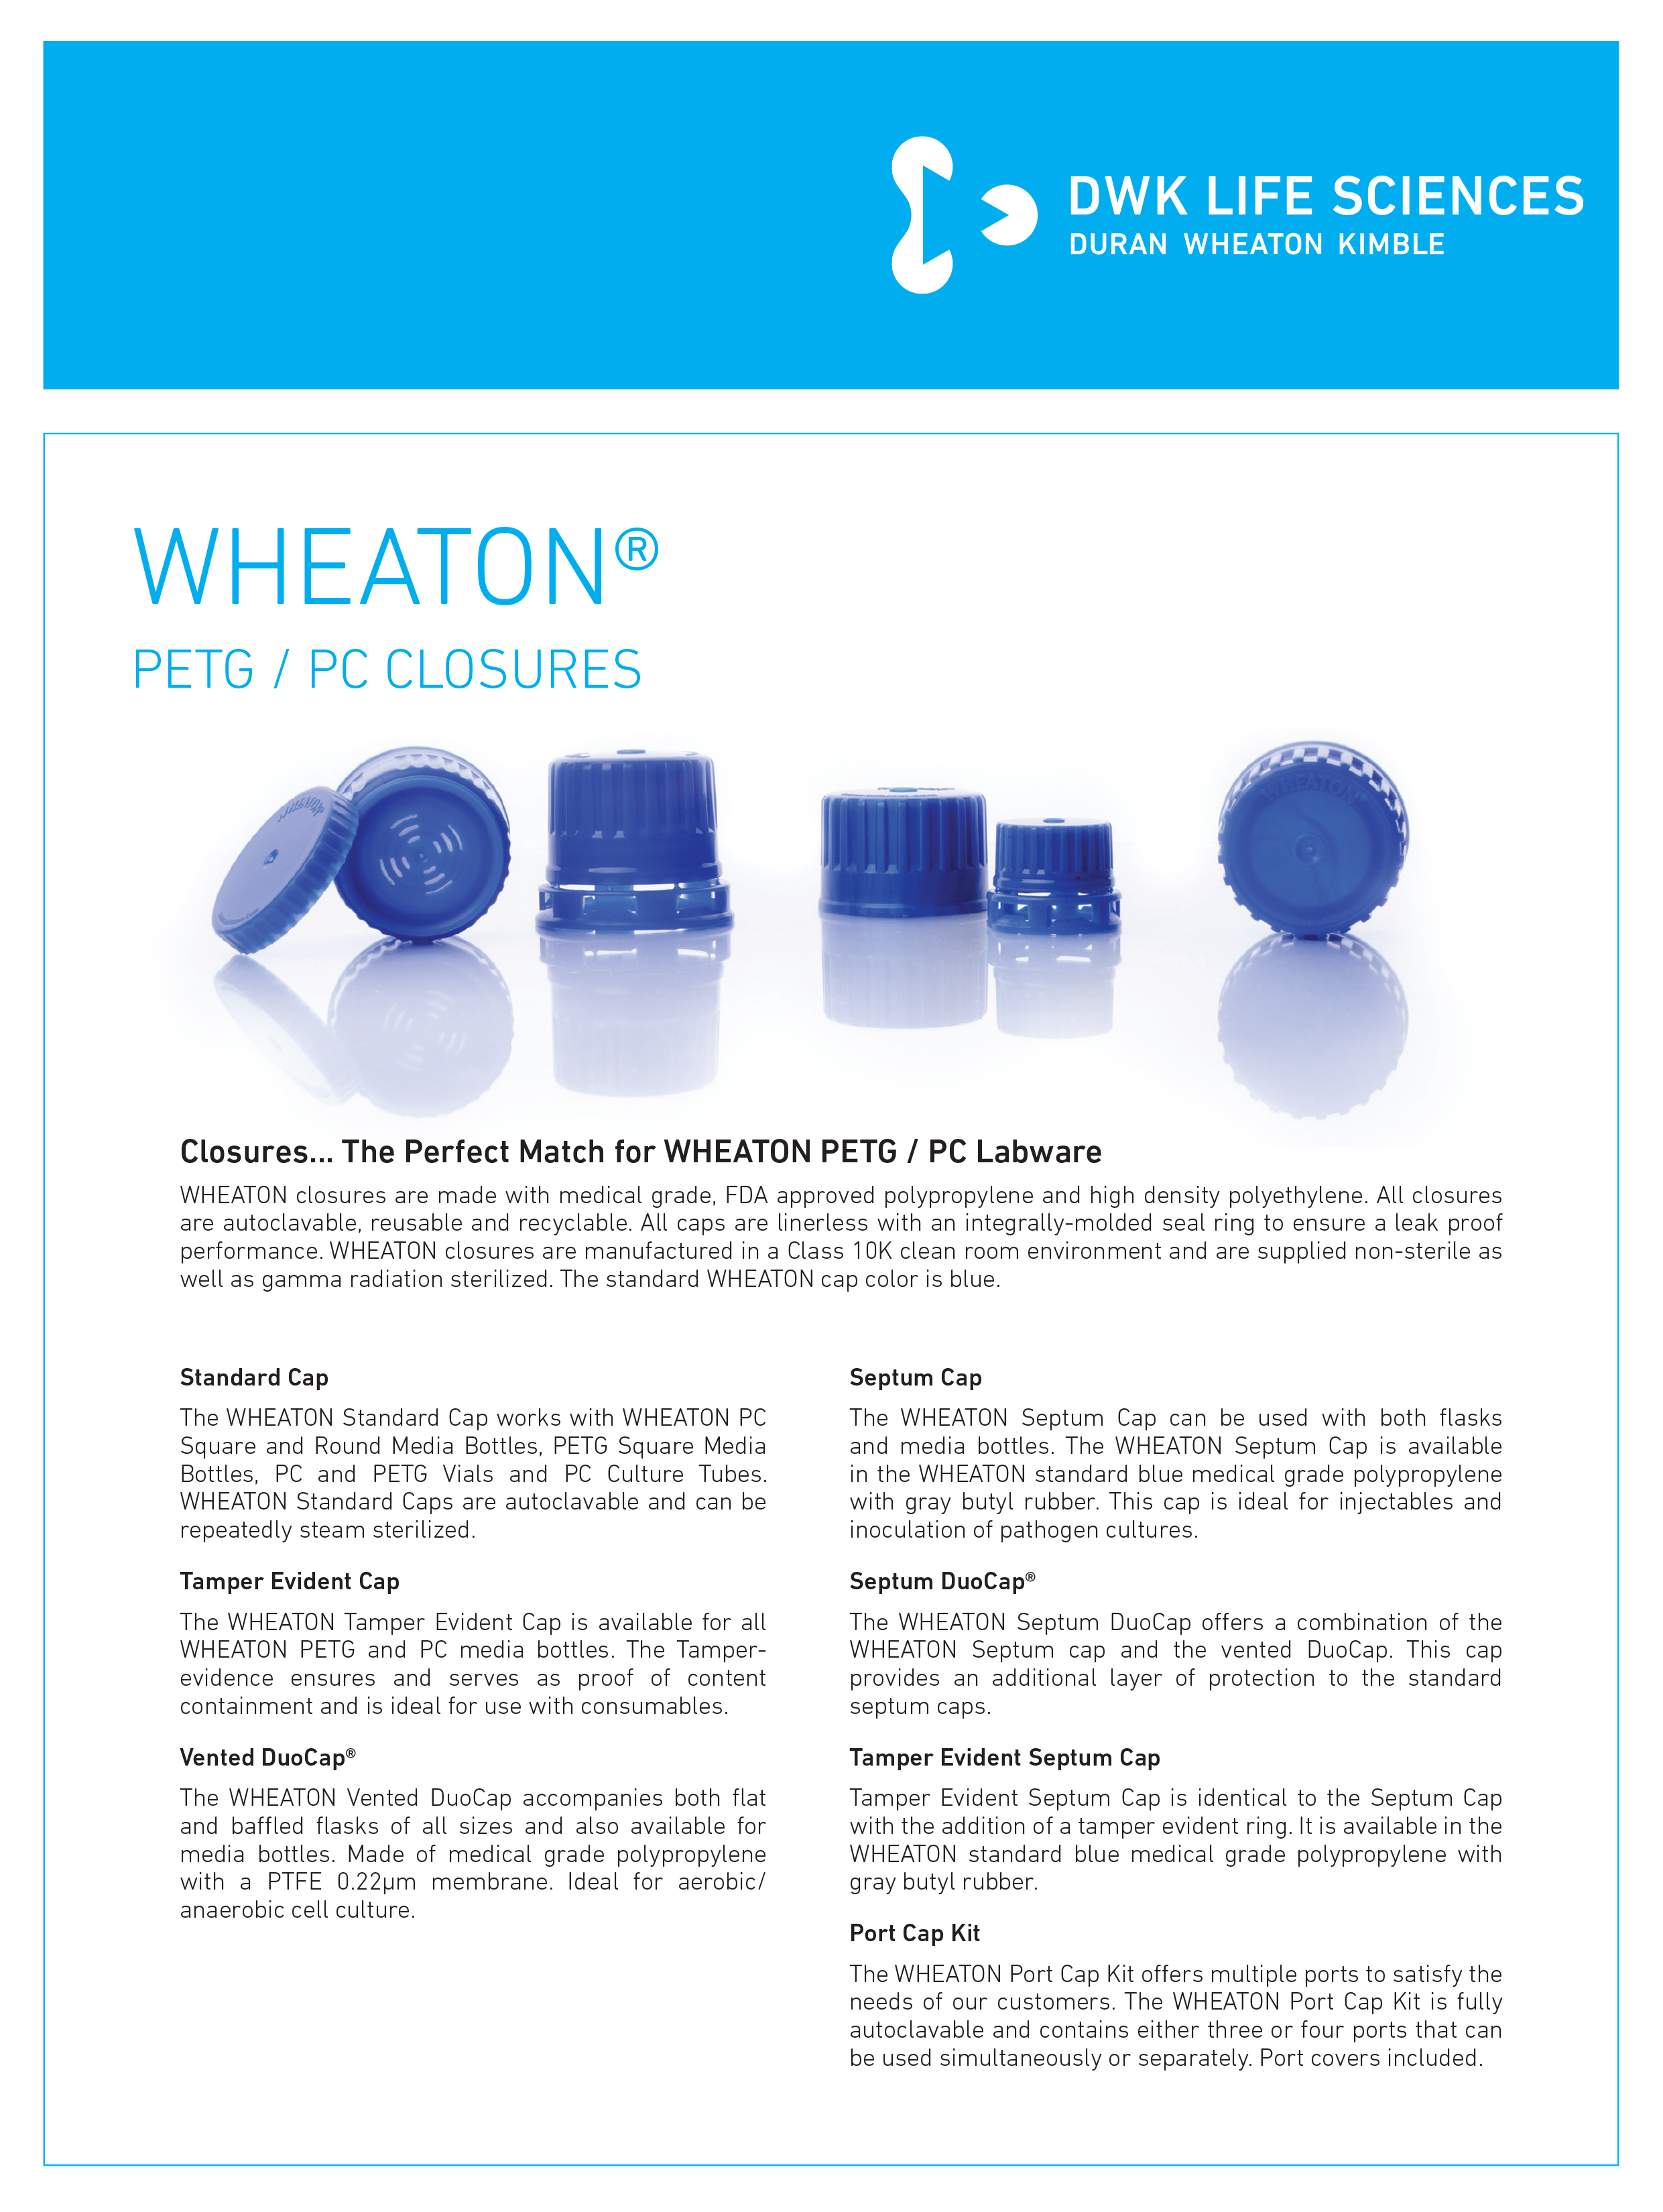 WHEATON® PETG Closures Flyer